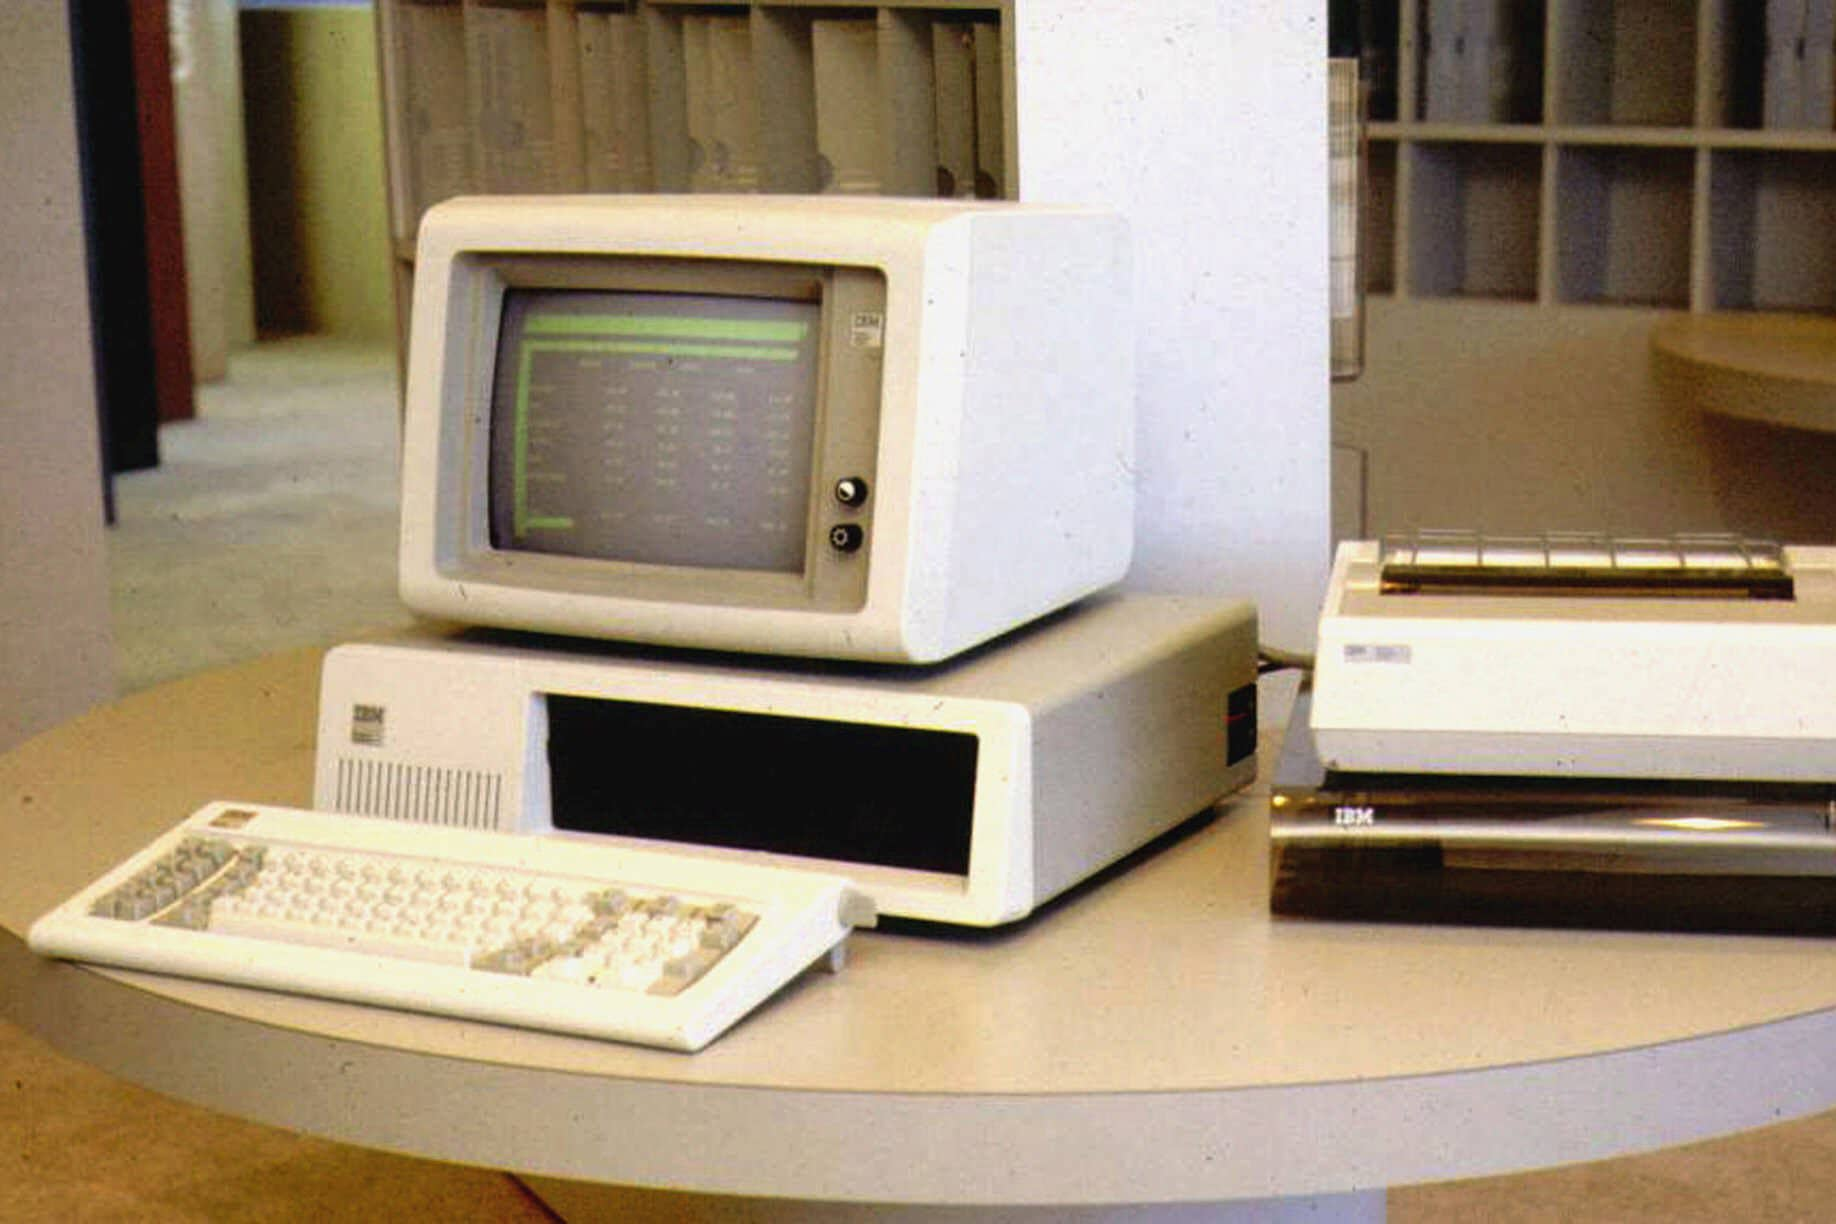 A look back at the first IBM computer